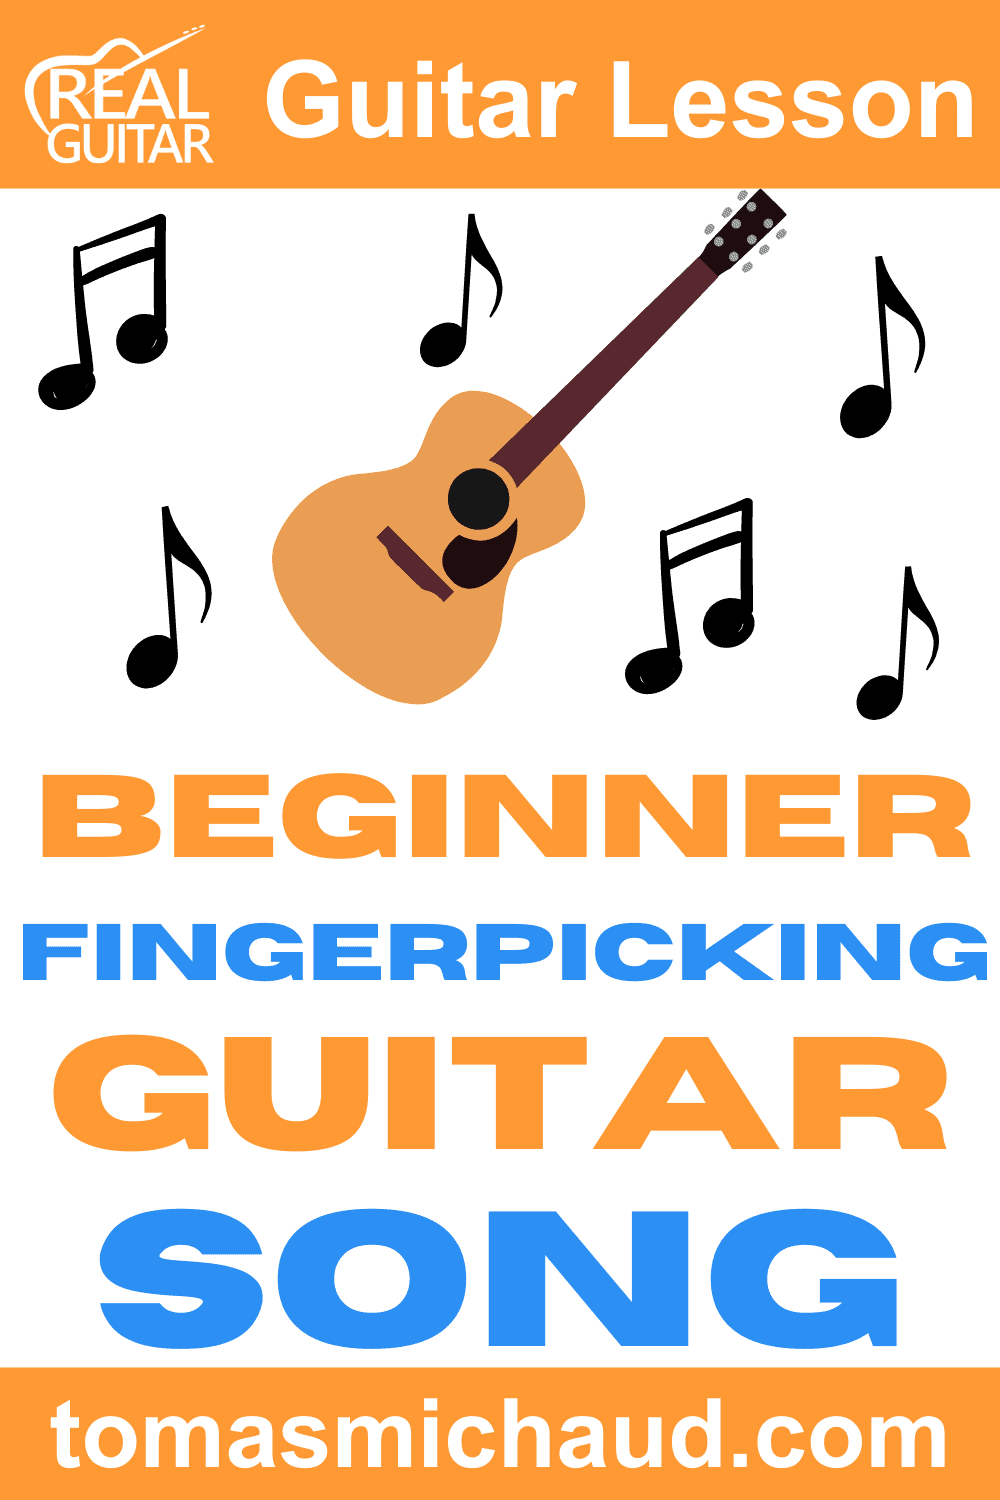 Beginner Fingerpicking Guitar Song